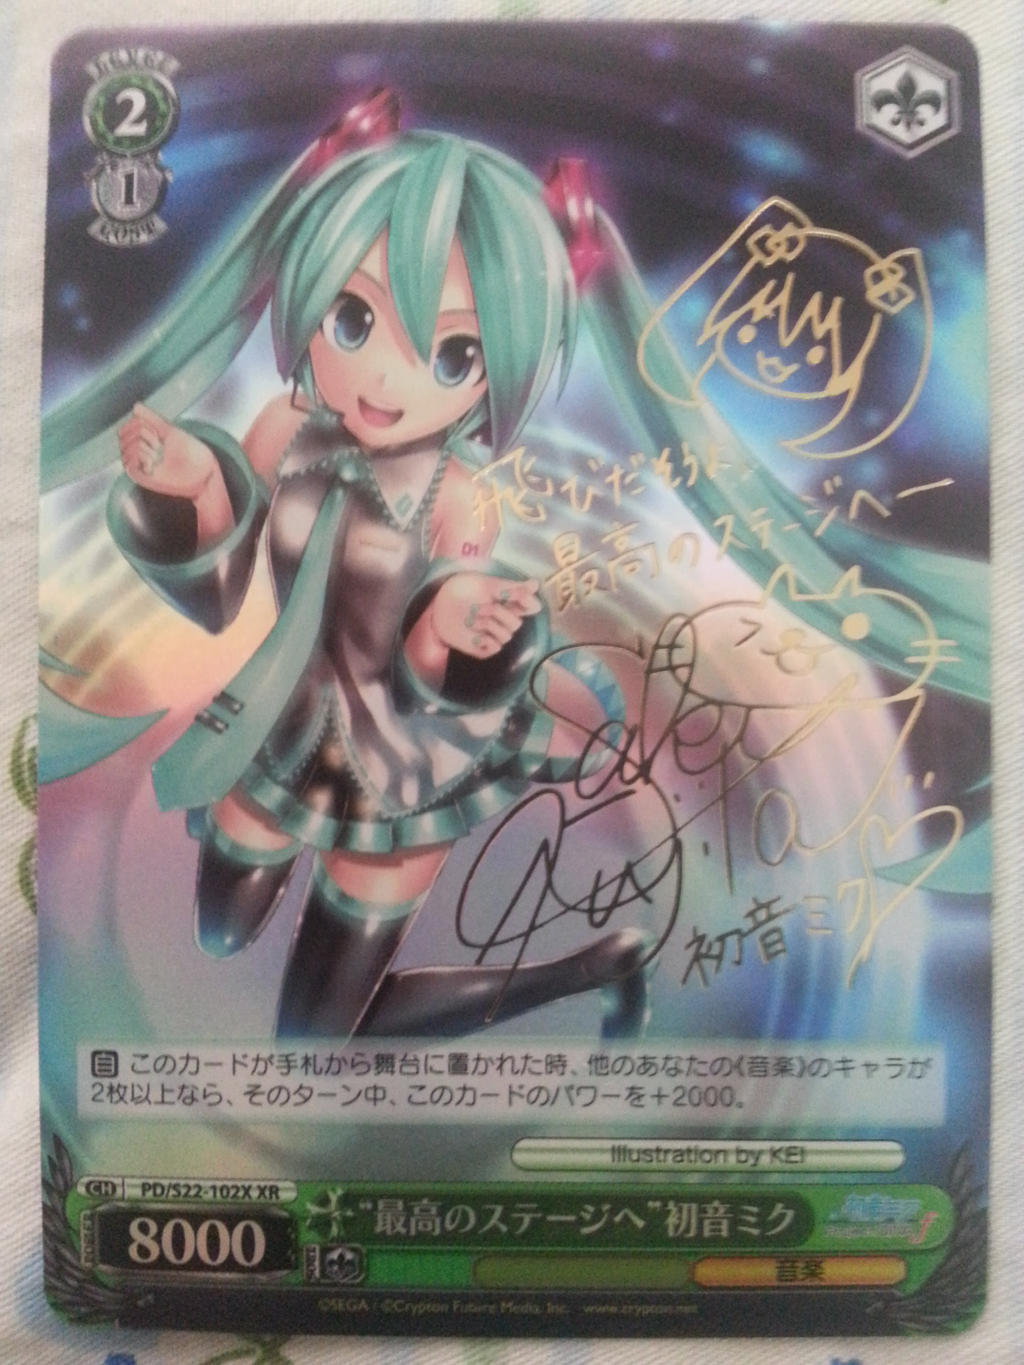 hatsune miku weiss schwarz trial deck signed card by. Black Bedroom Furniture Sets. Home Design Ideas